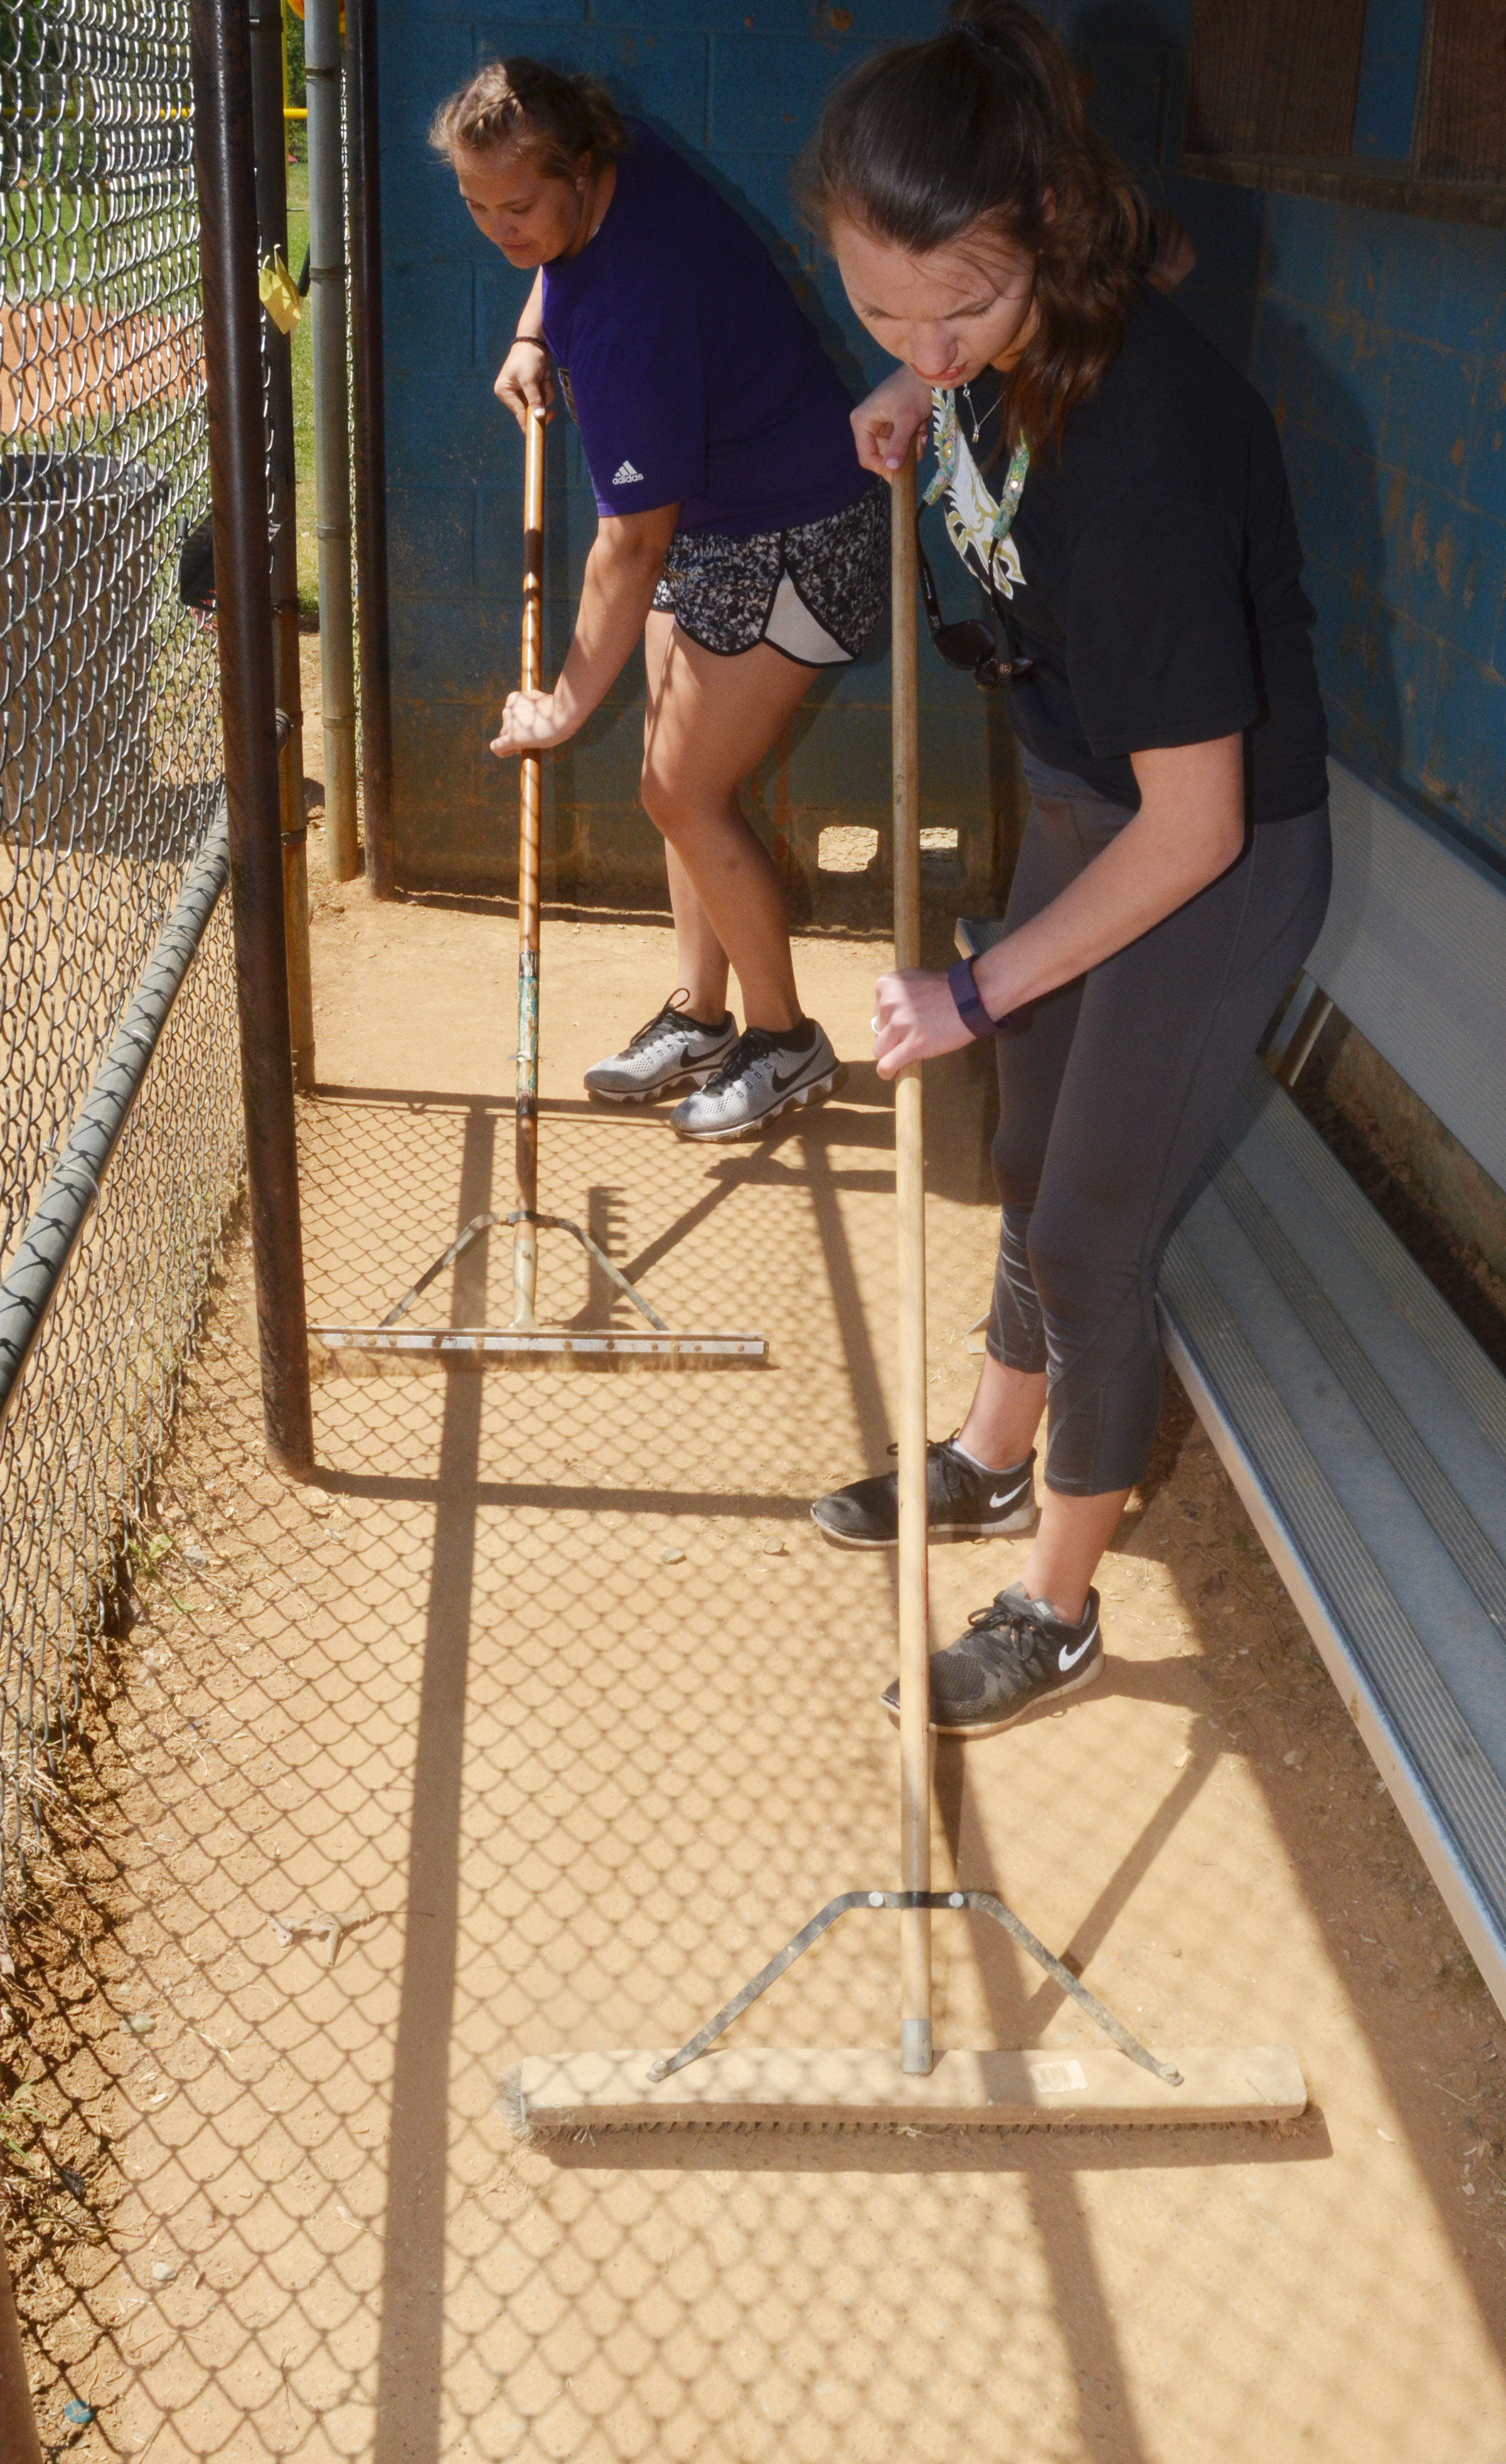 CHS seniors Brenna Wethington, at left, and Caylie Blair sweep the dugouts at Miller Park.